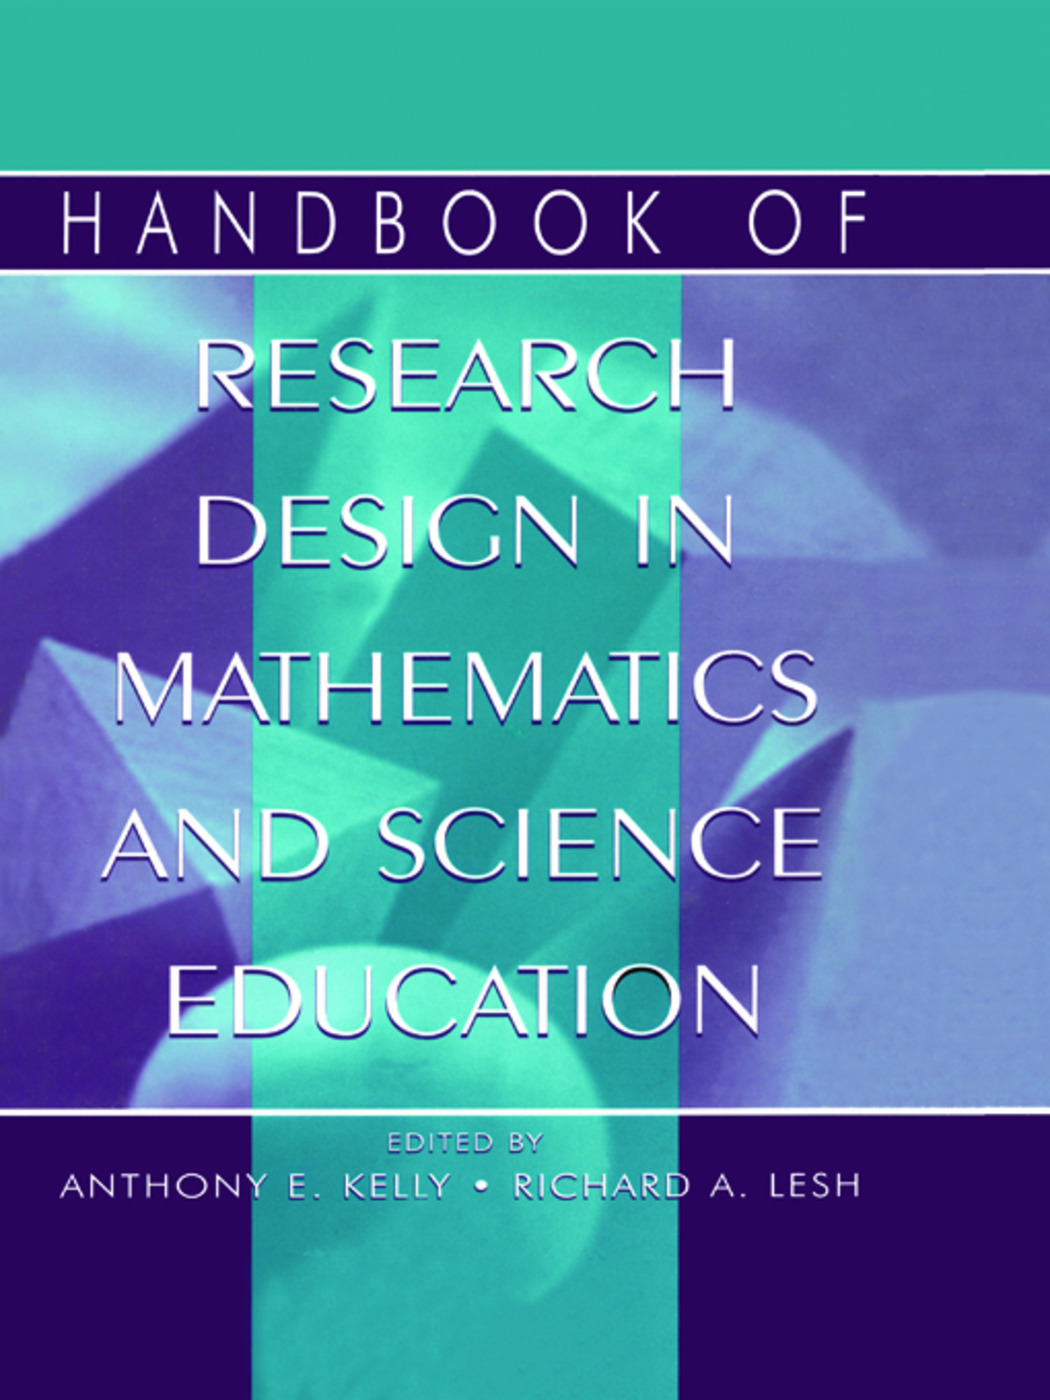 Handbook of Research Design in Mathematics and Science Education: 1st Edition (Hardback) book cover